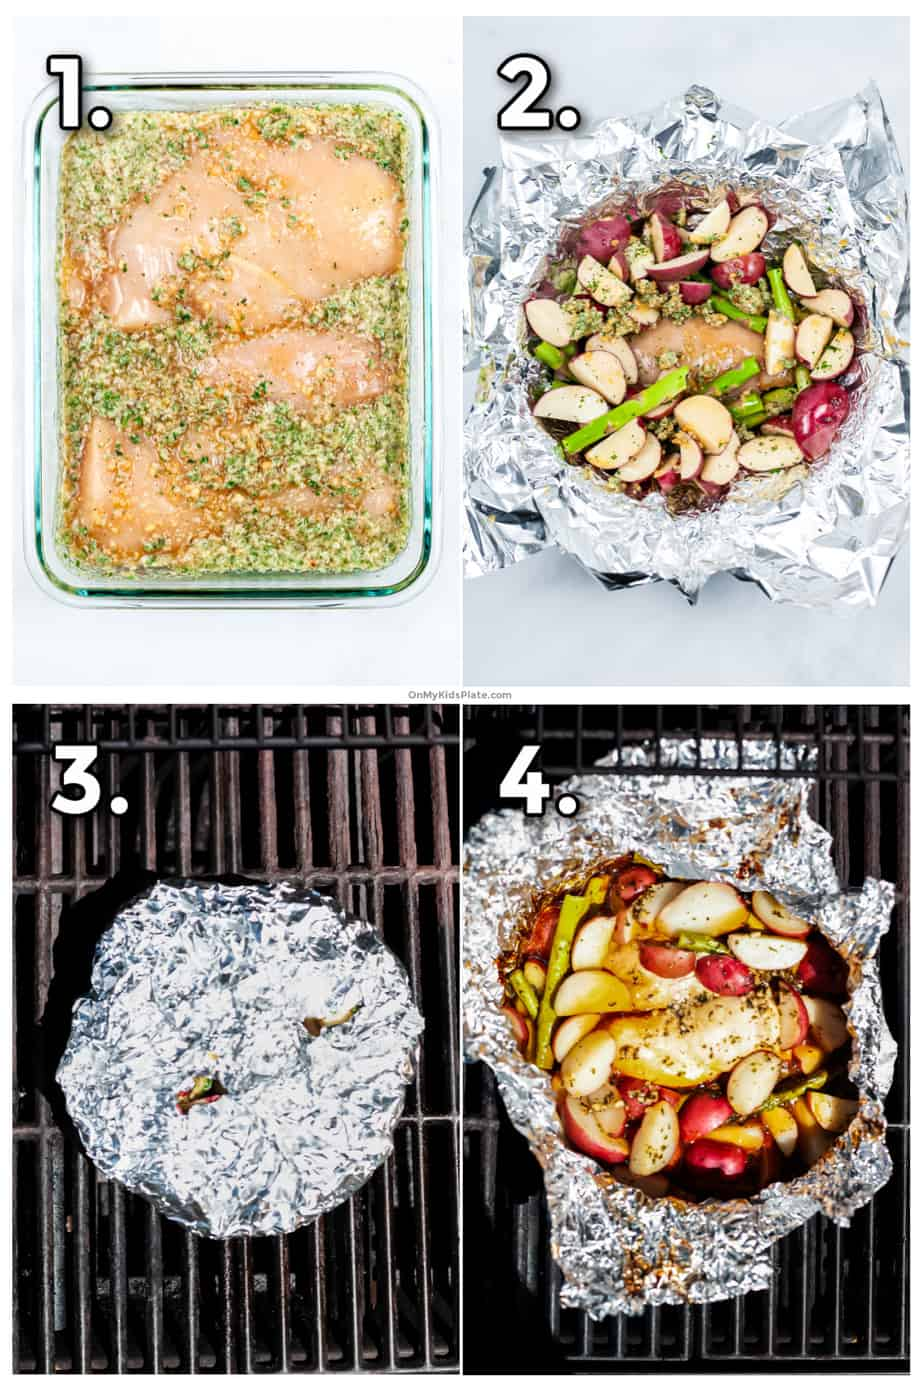 Process photos showing marinating the chicken, layering the chicken packets with potatoes, asparagus and sauce, folding up grilling, and the finished packet.